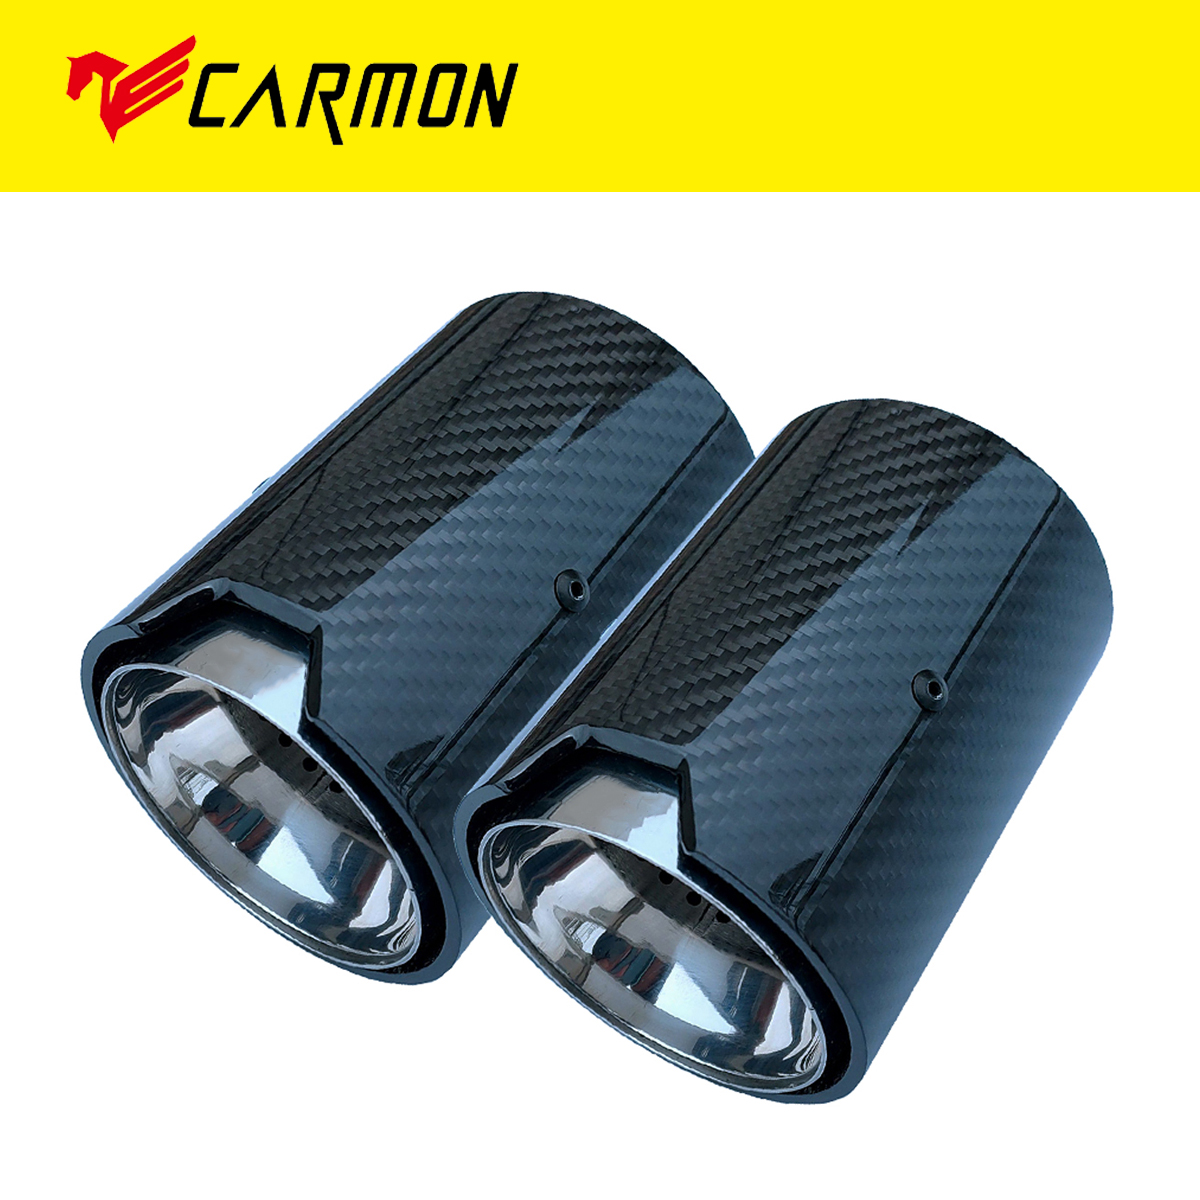 2PCS Real Carbon Fiber Exhaust Pipe Muffler Tip For BMW M Performance Exhaust Pipe M2 F87 M3 F80 M4 F82 F83 M5 F10 M6 F12 F13